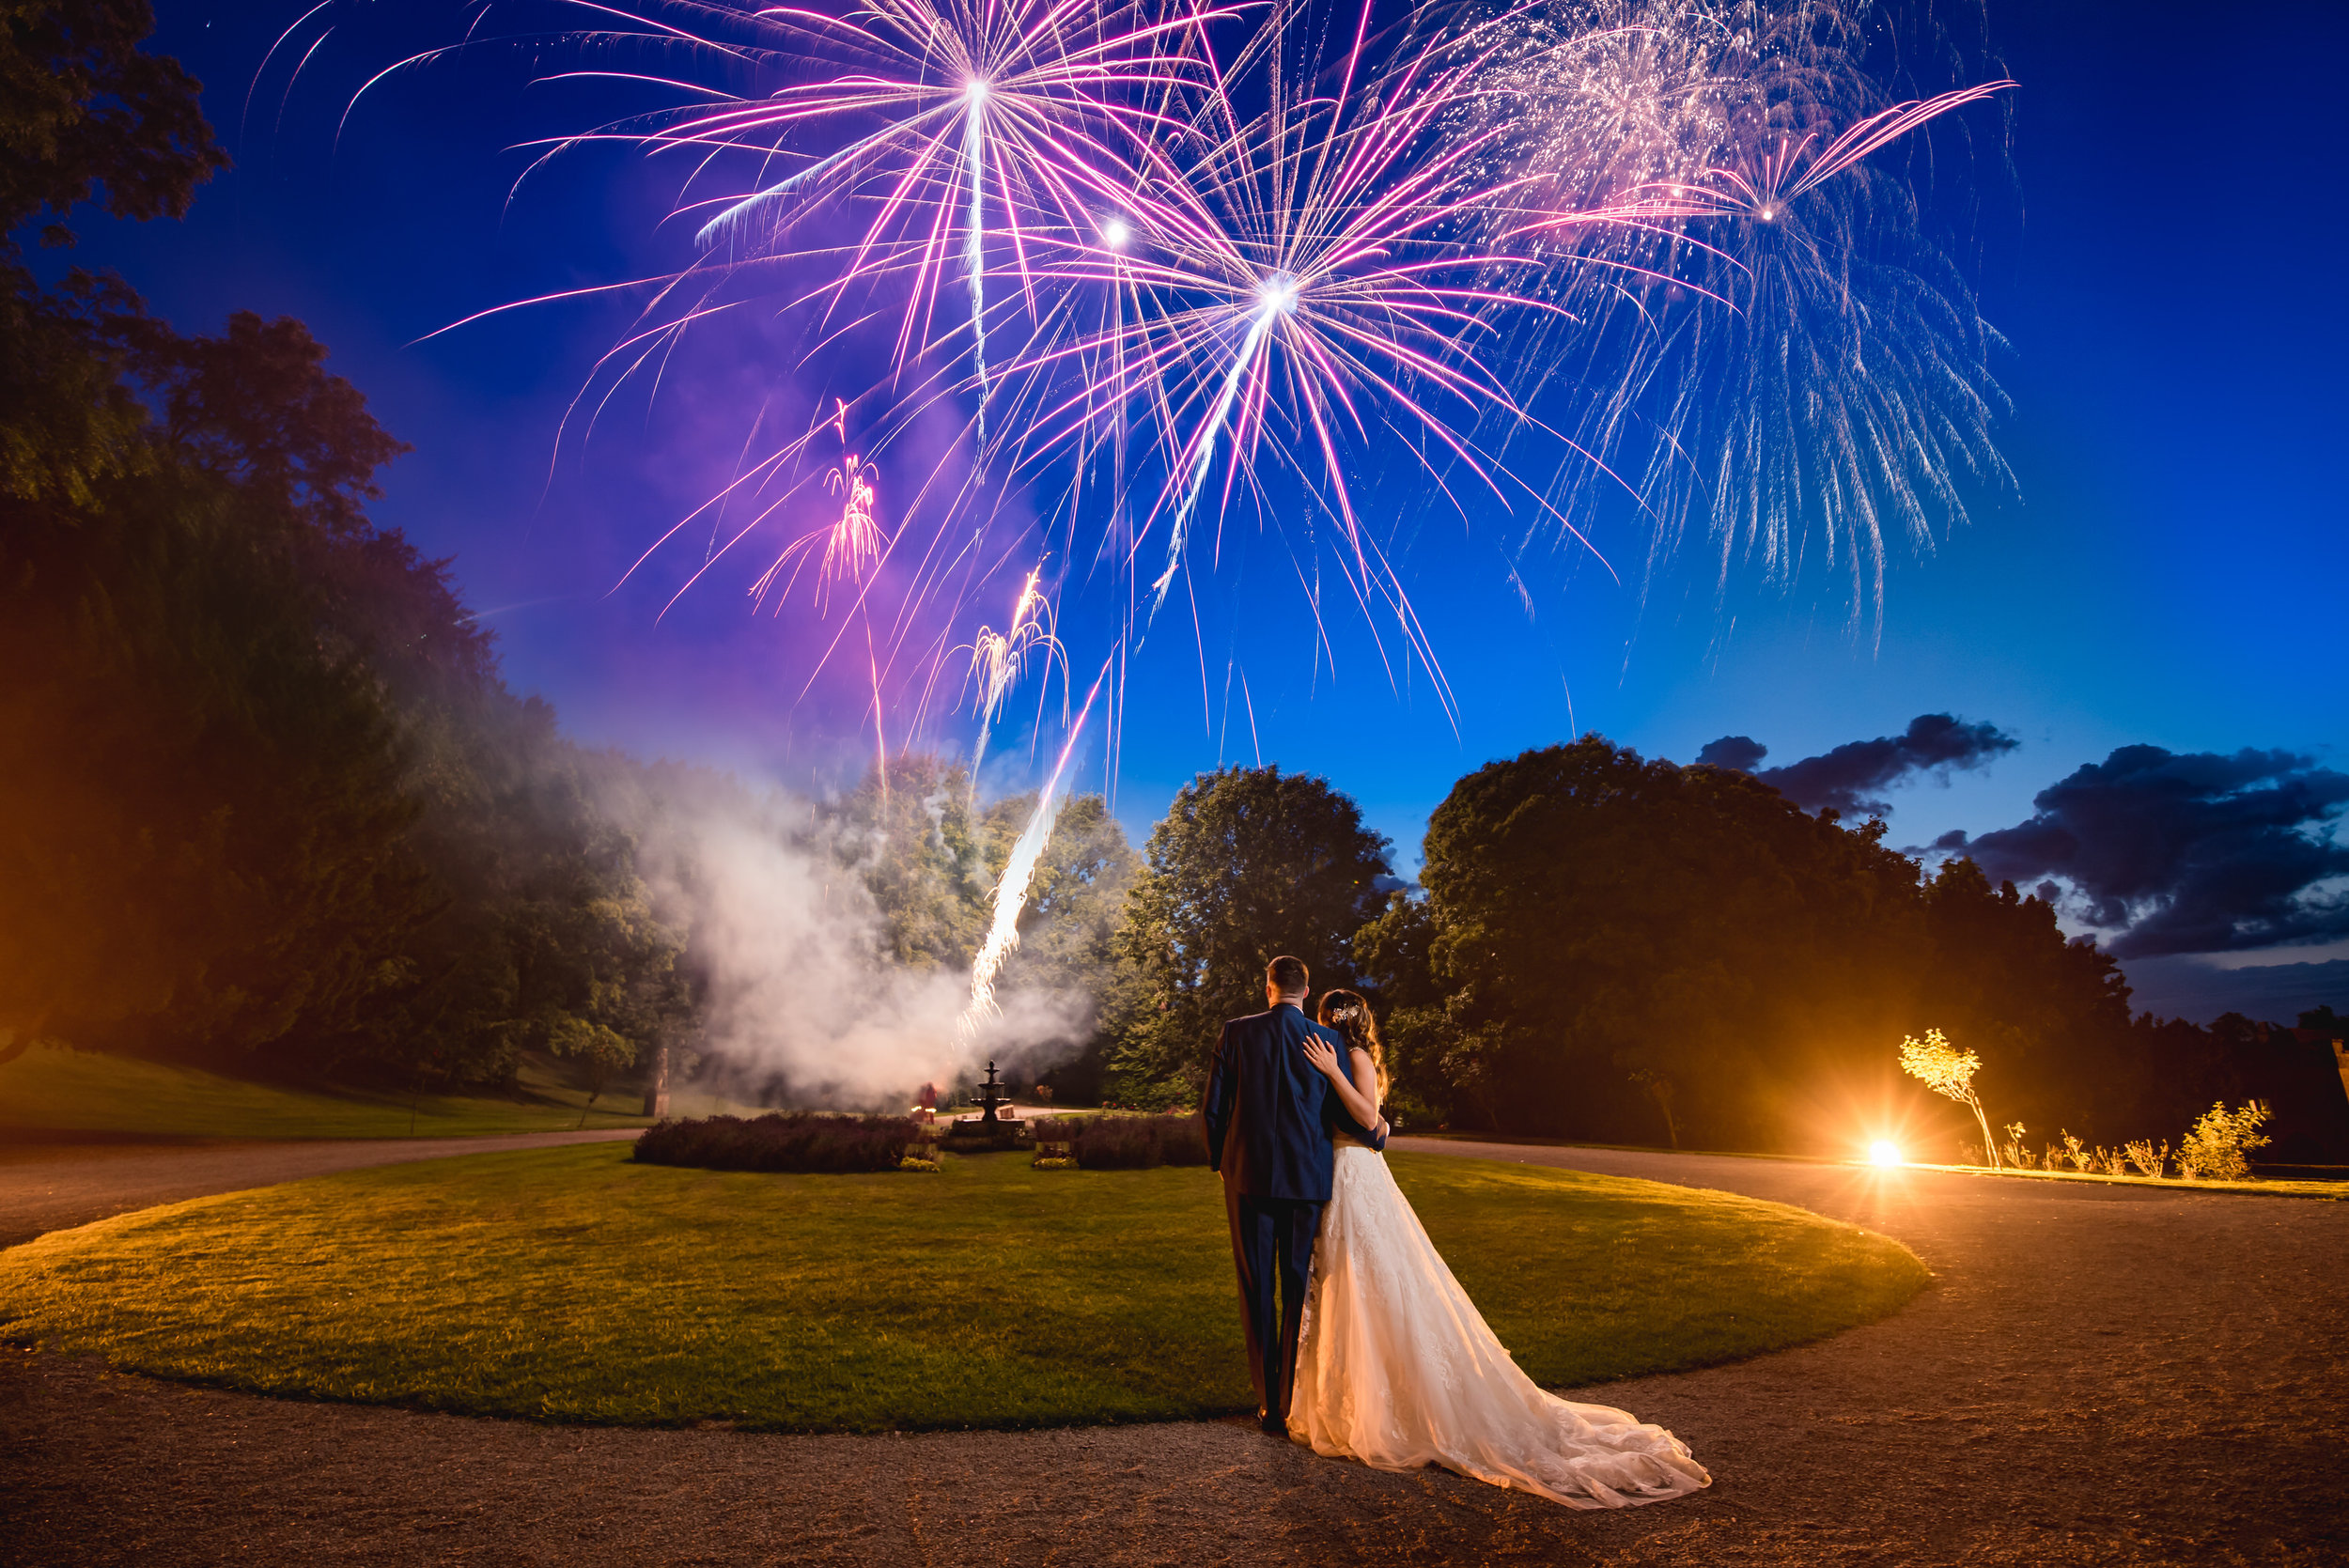 Clearwell-Castle-Gloucestershire-Wedding-Photography-45.jpg